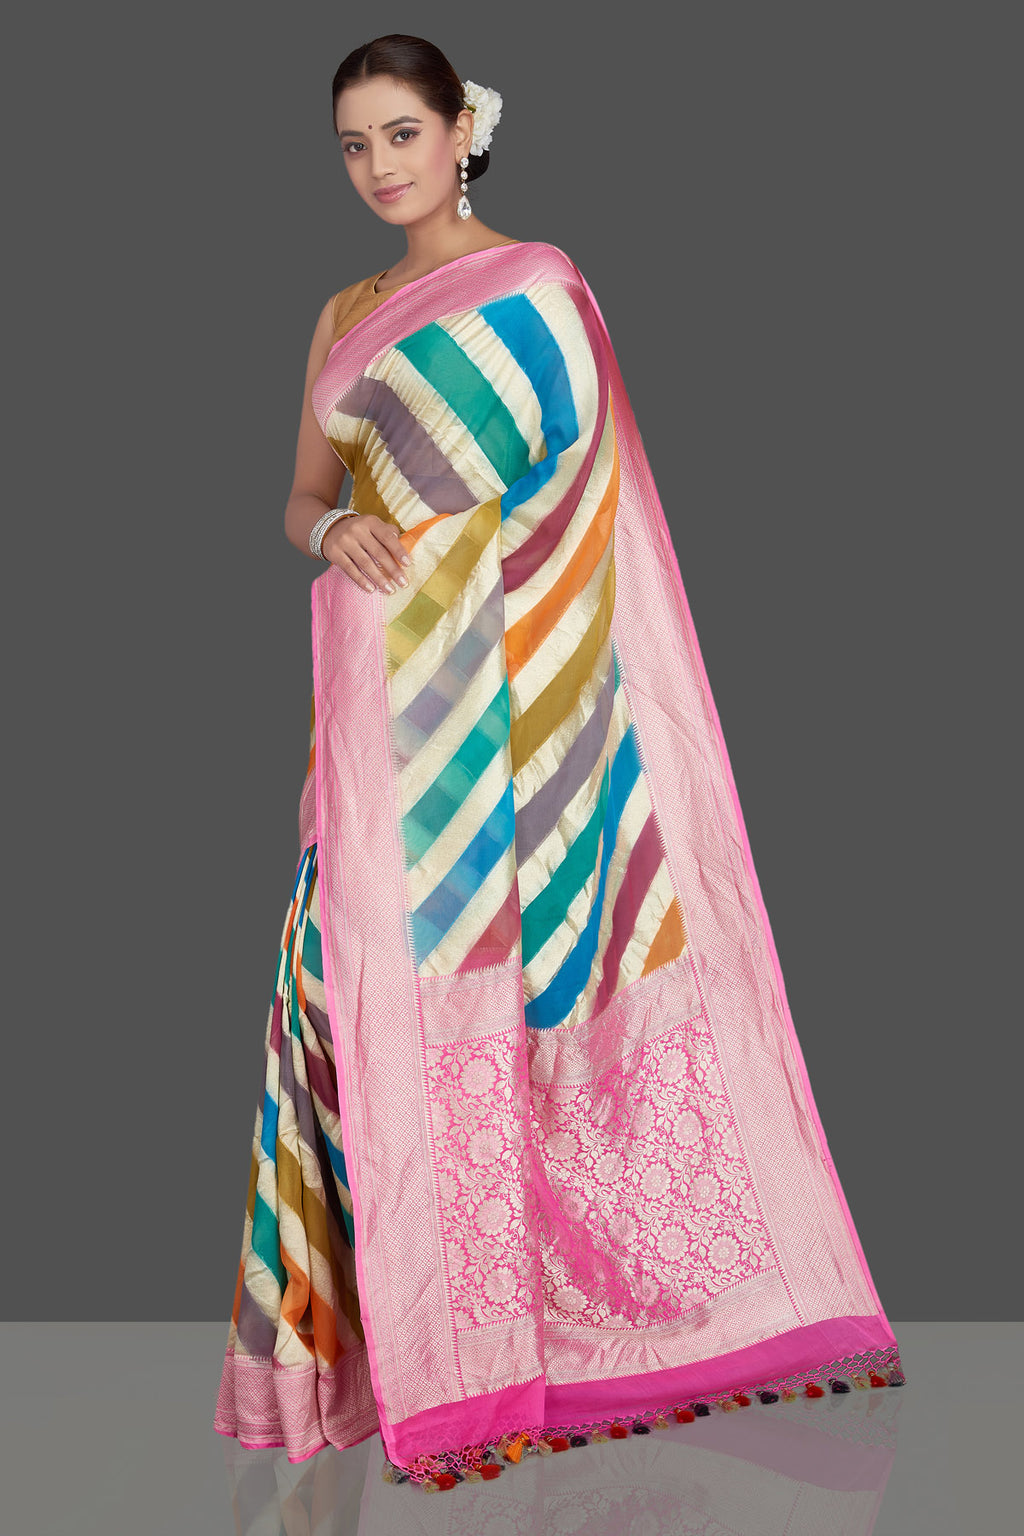 Buy beautiful multicolor stripes tissue sari online in USA with pink zari border. Make an impeccable ethnic fashion statement on festive occasions with traditional Indian sarees, pure silk sarees, designer sarees, handwoven saris, Banarasi sarees from Pure Elegance Indian saree store in USA.-full view